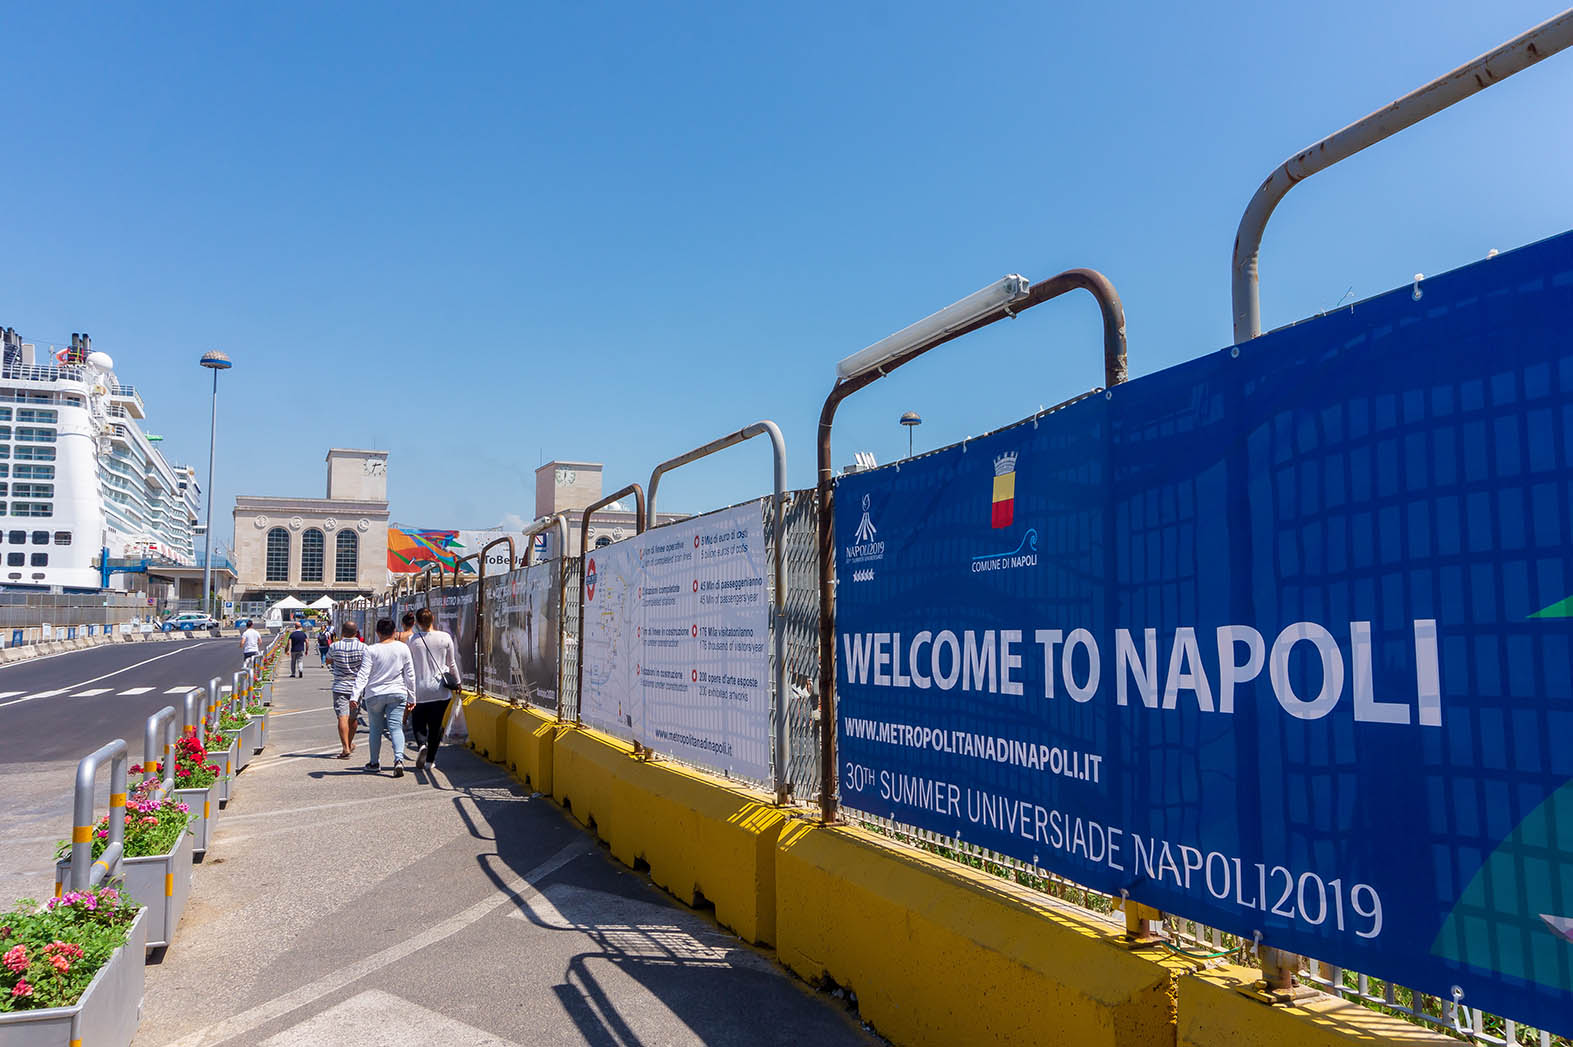 metropolitana napoli - Universiade 2019